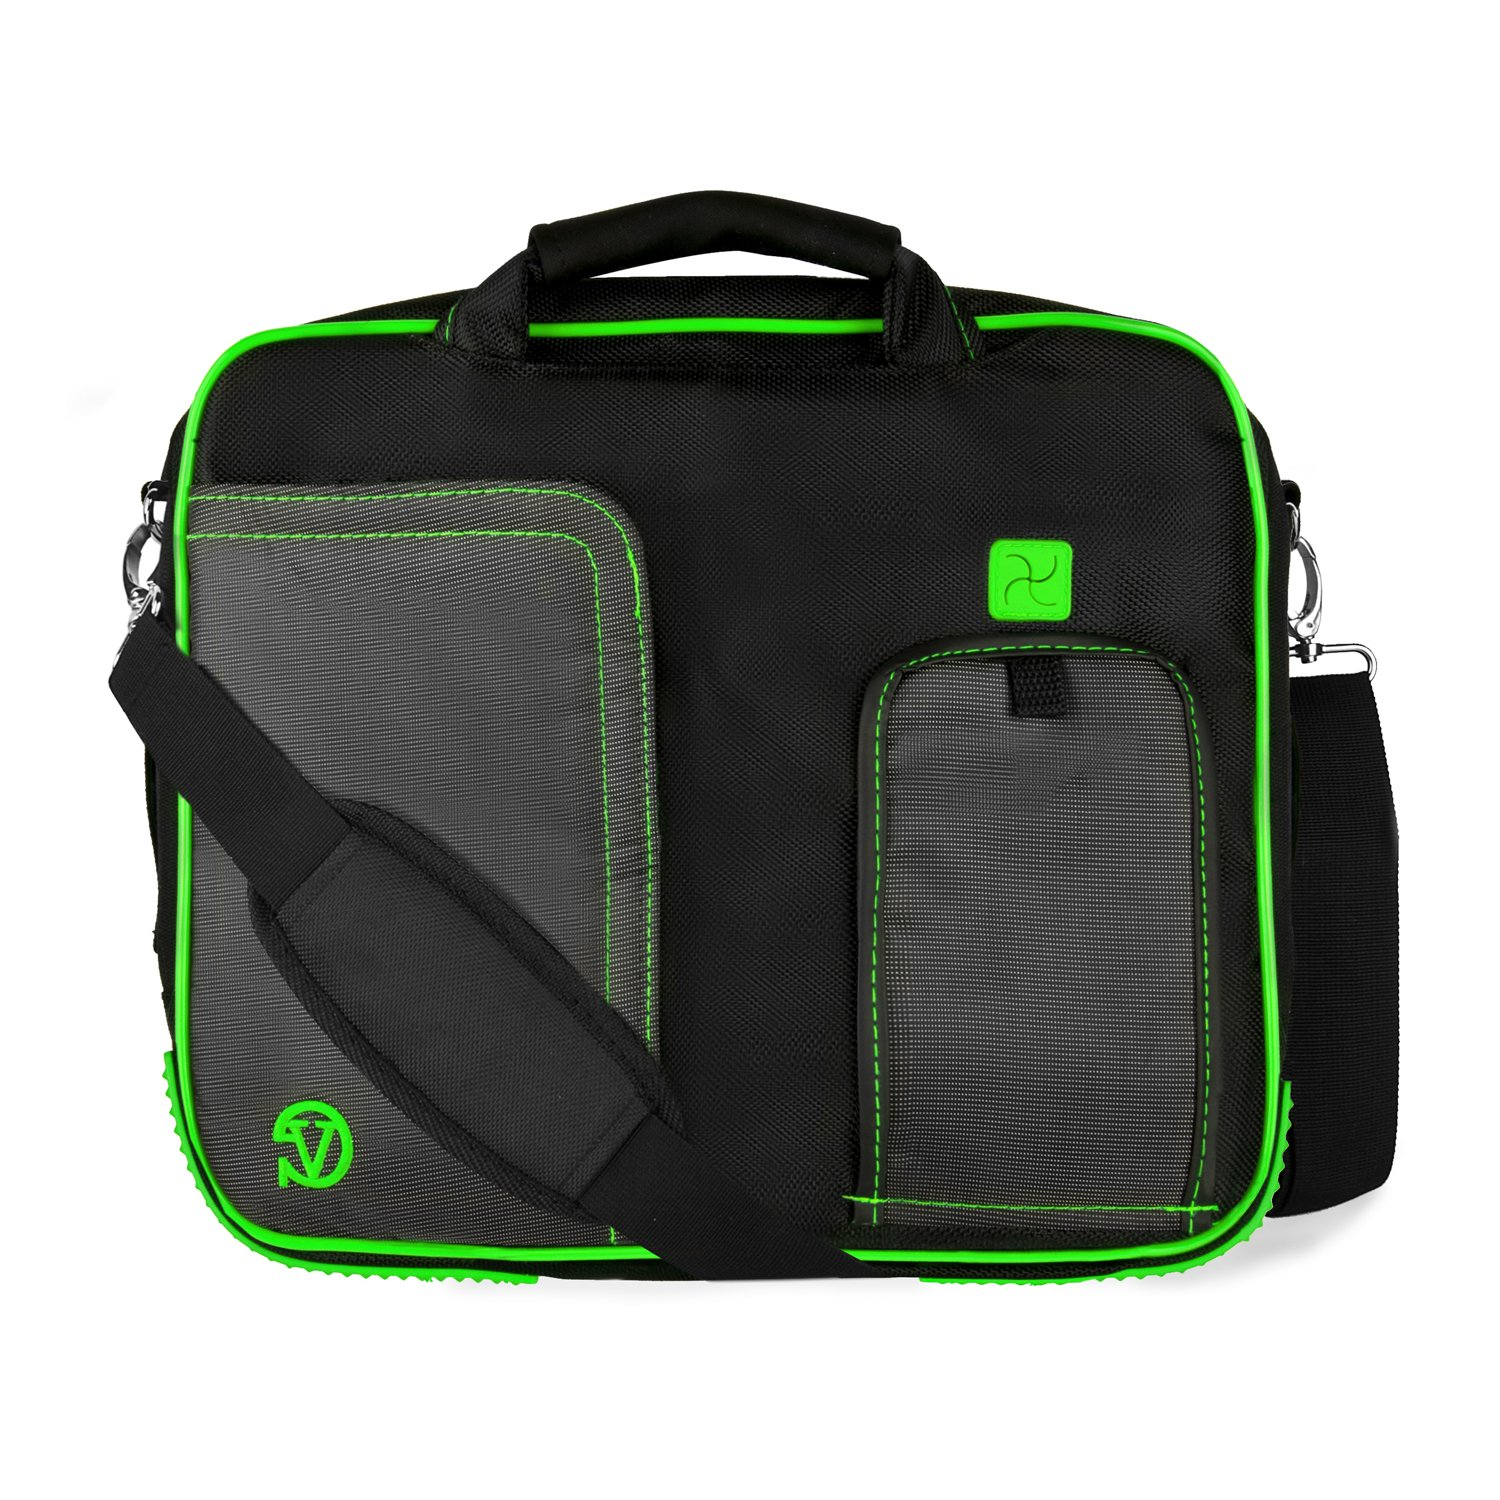 [Lime Green] Pindar Lightweight Shoulder Bag For Lenovo IdeaPad, ThinkPad, & Yoga 11 to 13.3-inch Laptops by Vangoddy